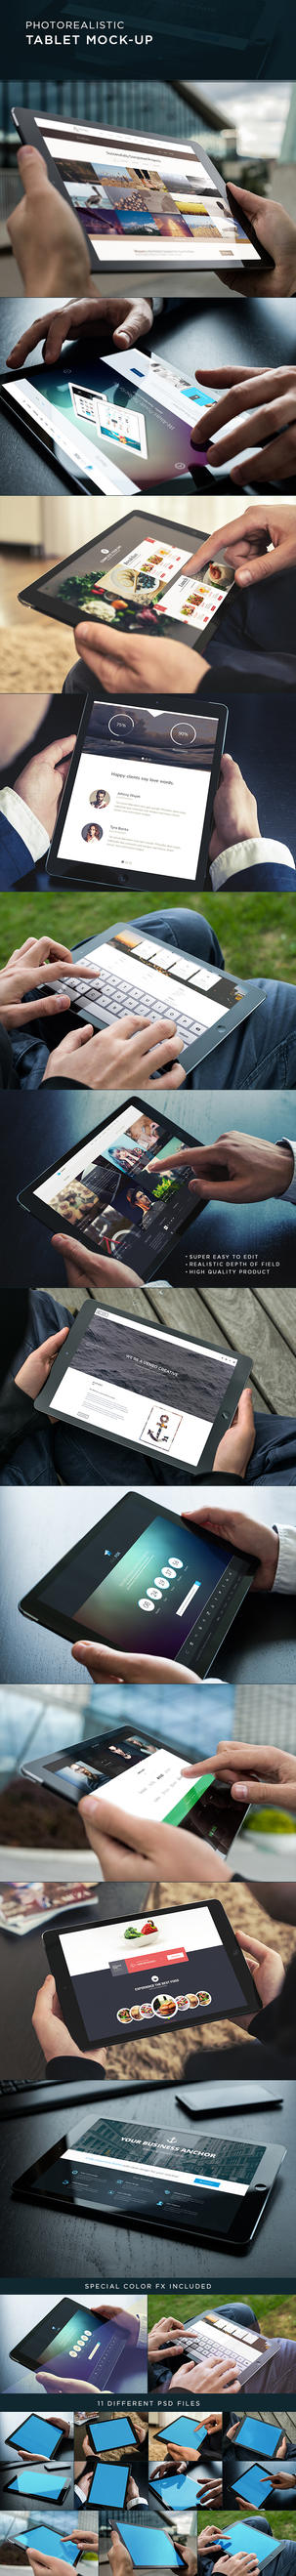 Photorealistic Tablet Mock-Up by Genetic96